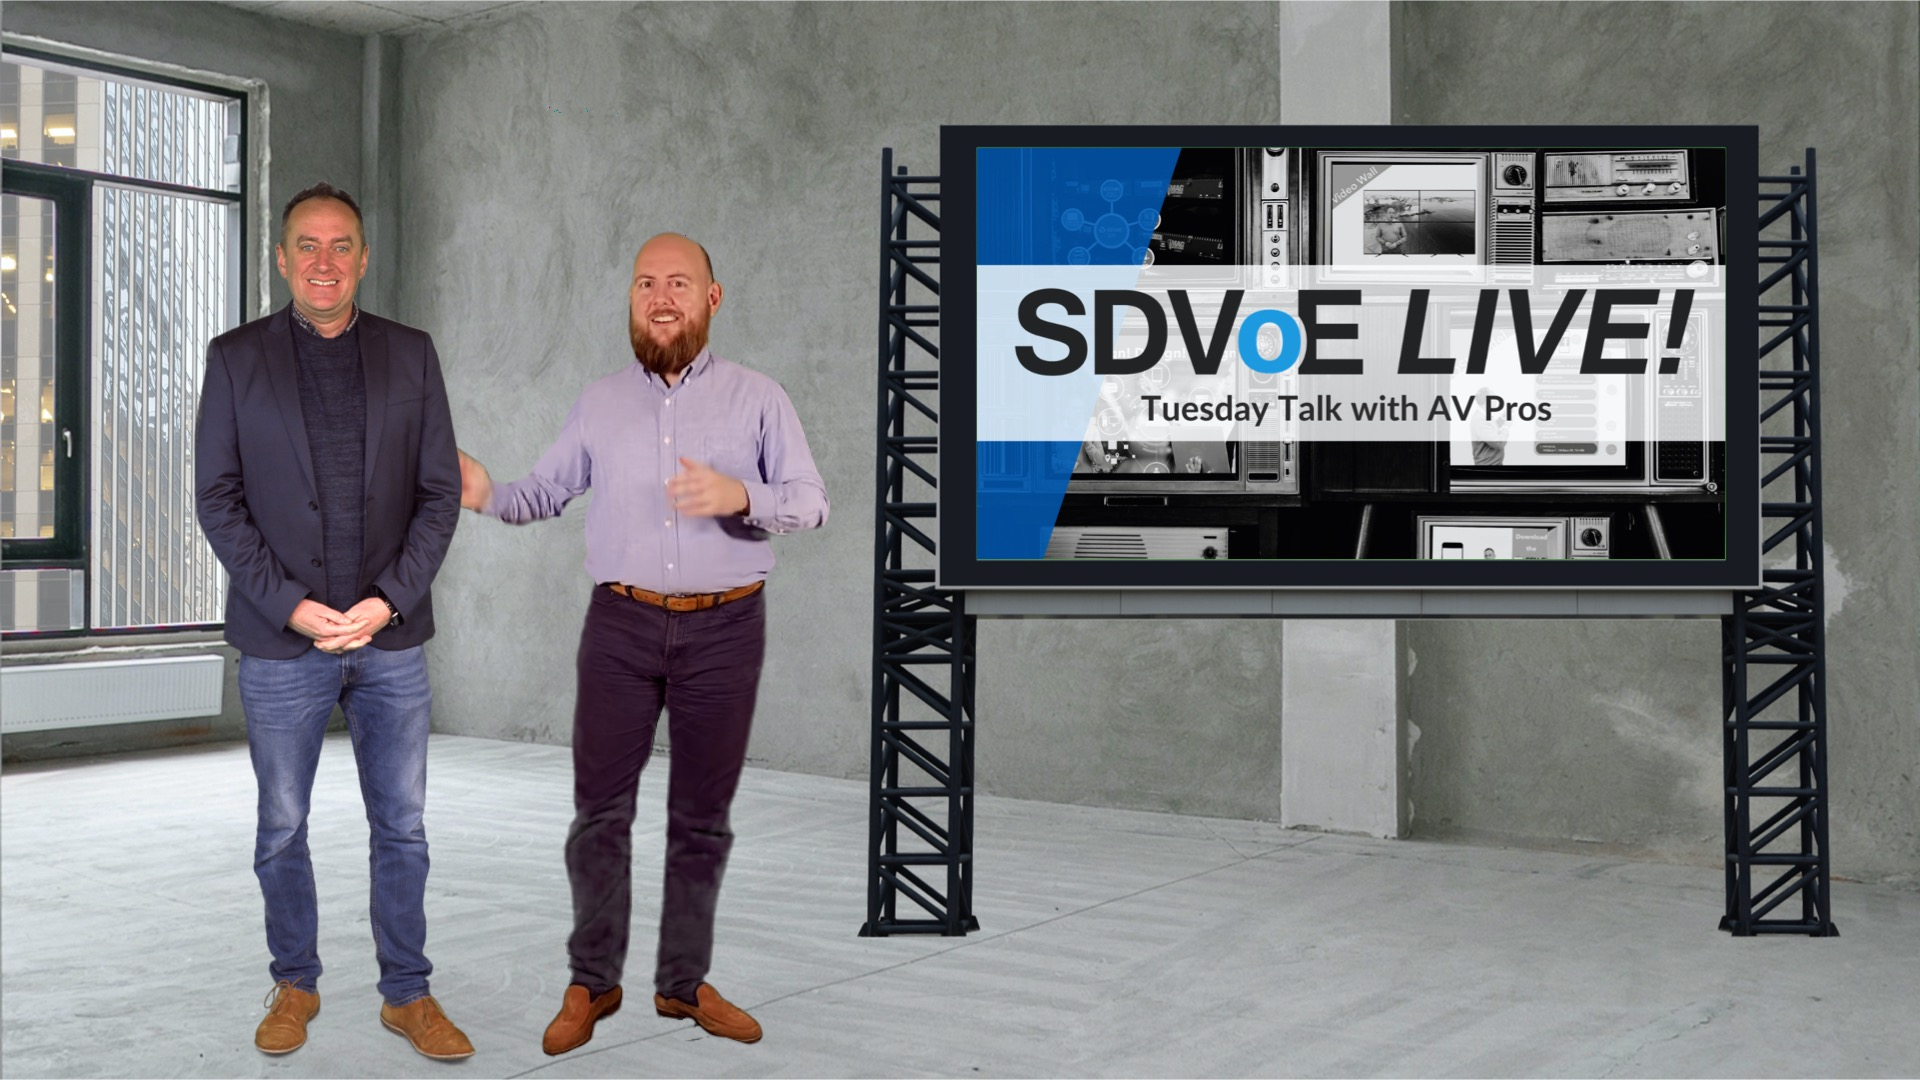 SDVoE LIVE! Episode 12: So You think you know USB?